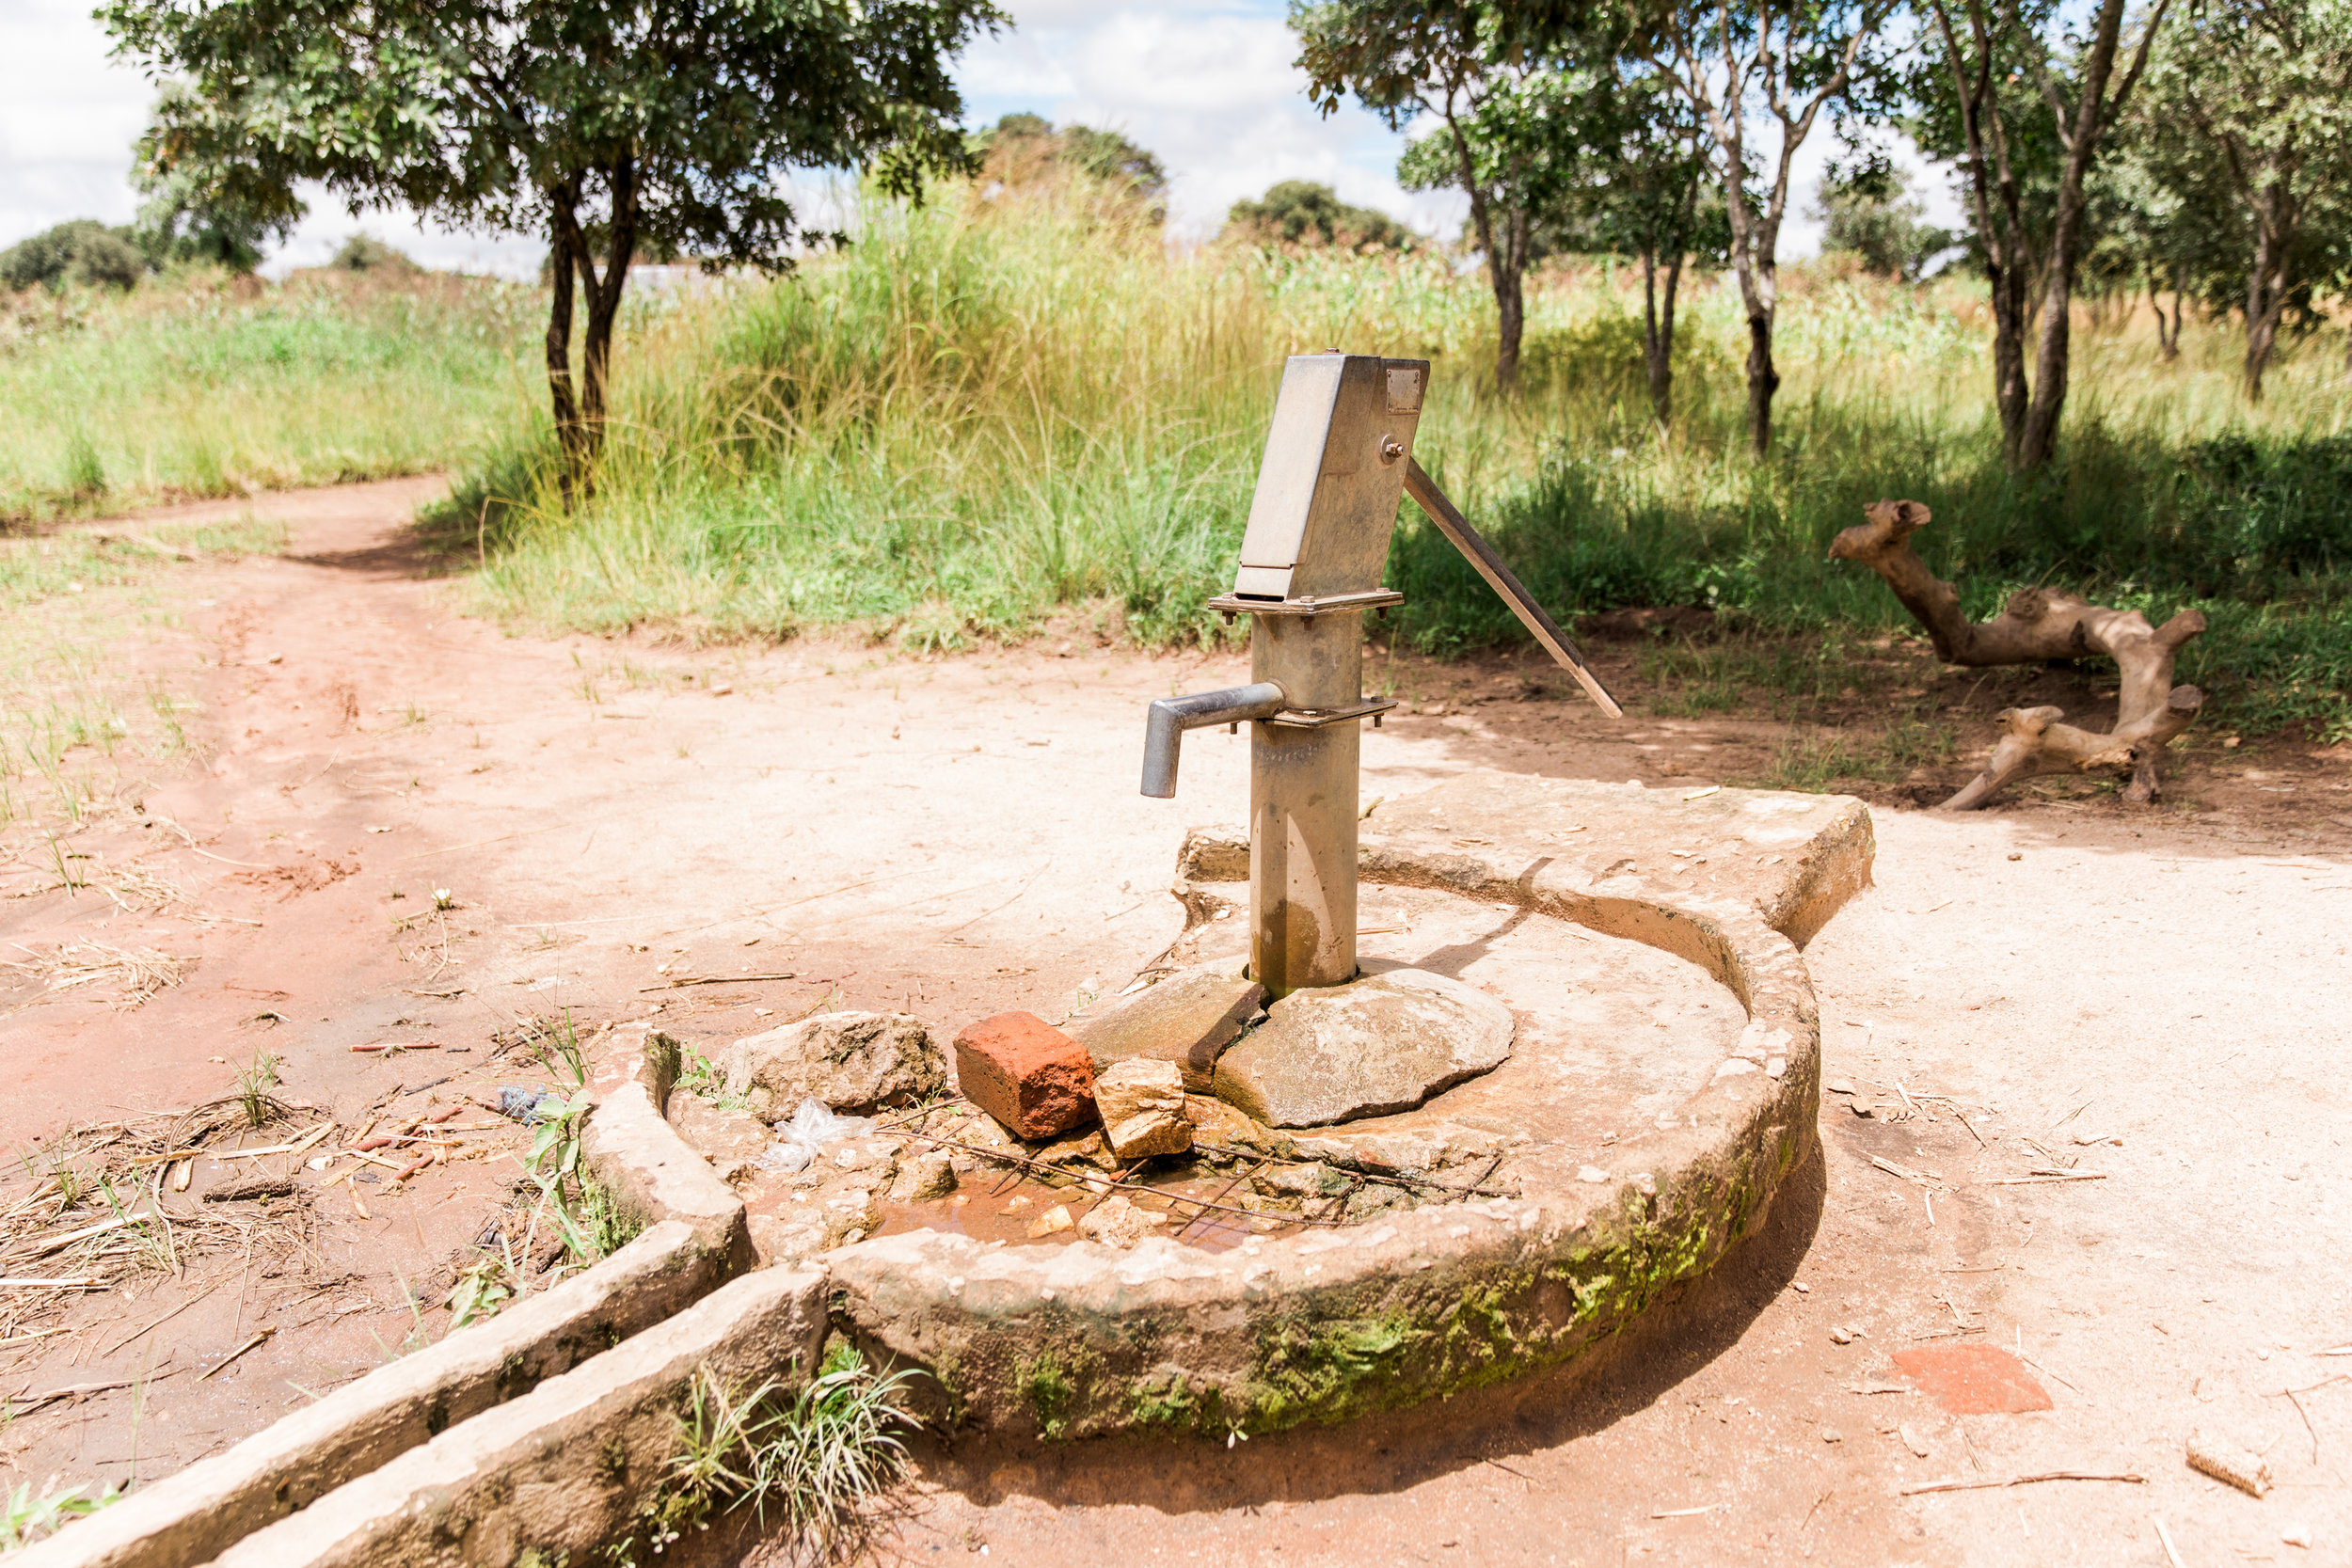 Here we have the bore hole where Kate gets her water.  This was repaired recently and isn't too far from Kate's house.  Previously she had to walk a mile or two to go get her water so the repair of this bore hole was huge!